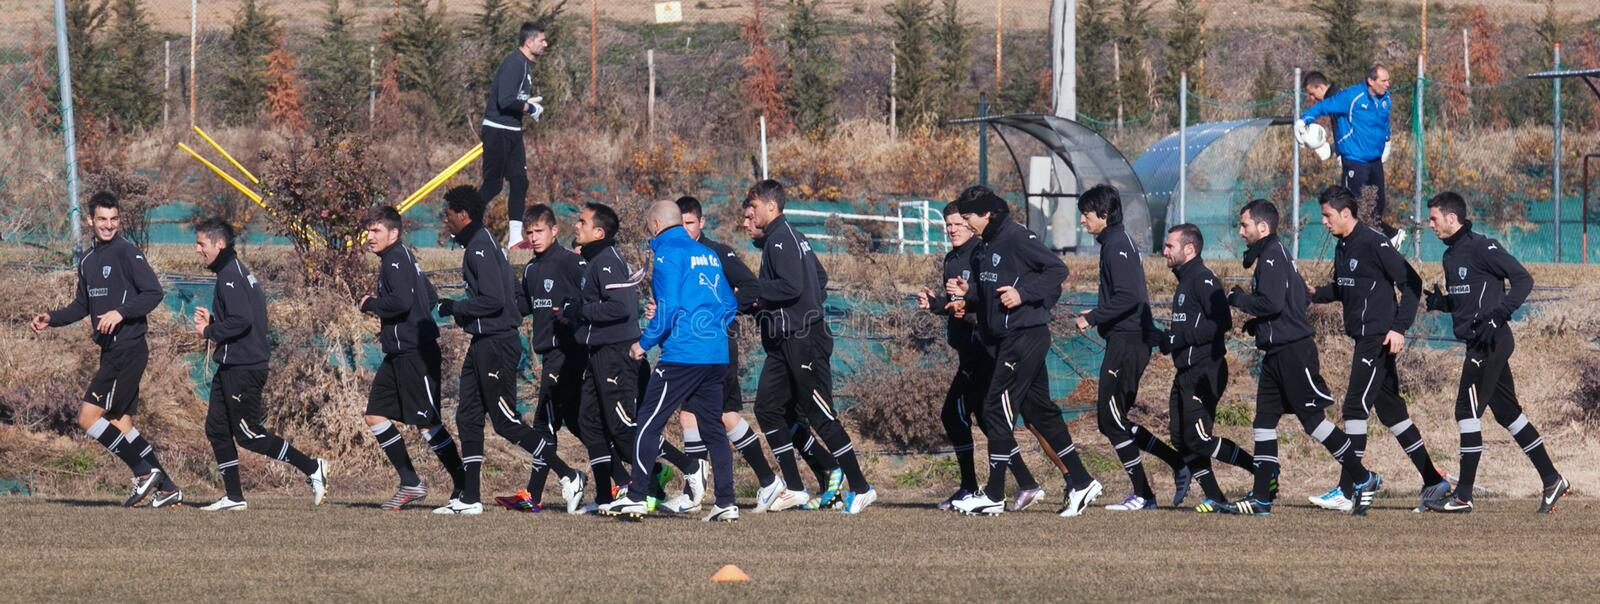 Download Coaching The Football Team Of PAOK Editorial Stock Photo - Image: 23434738